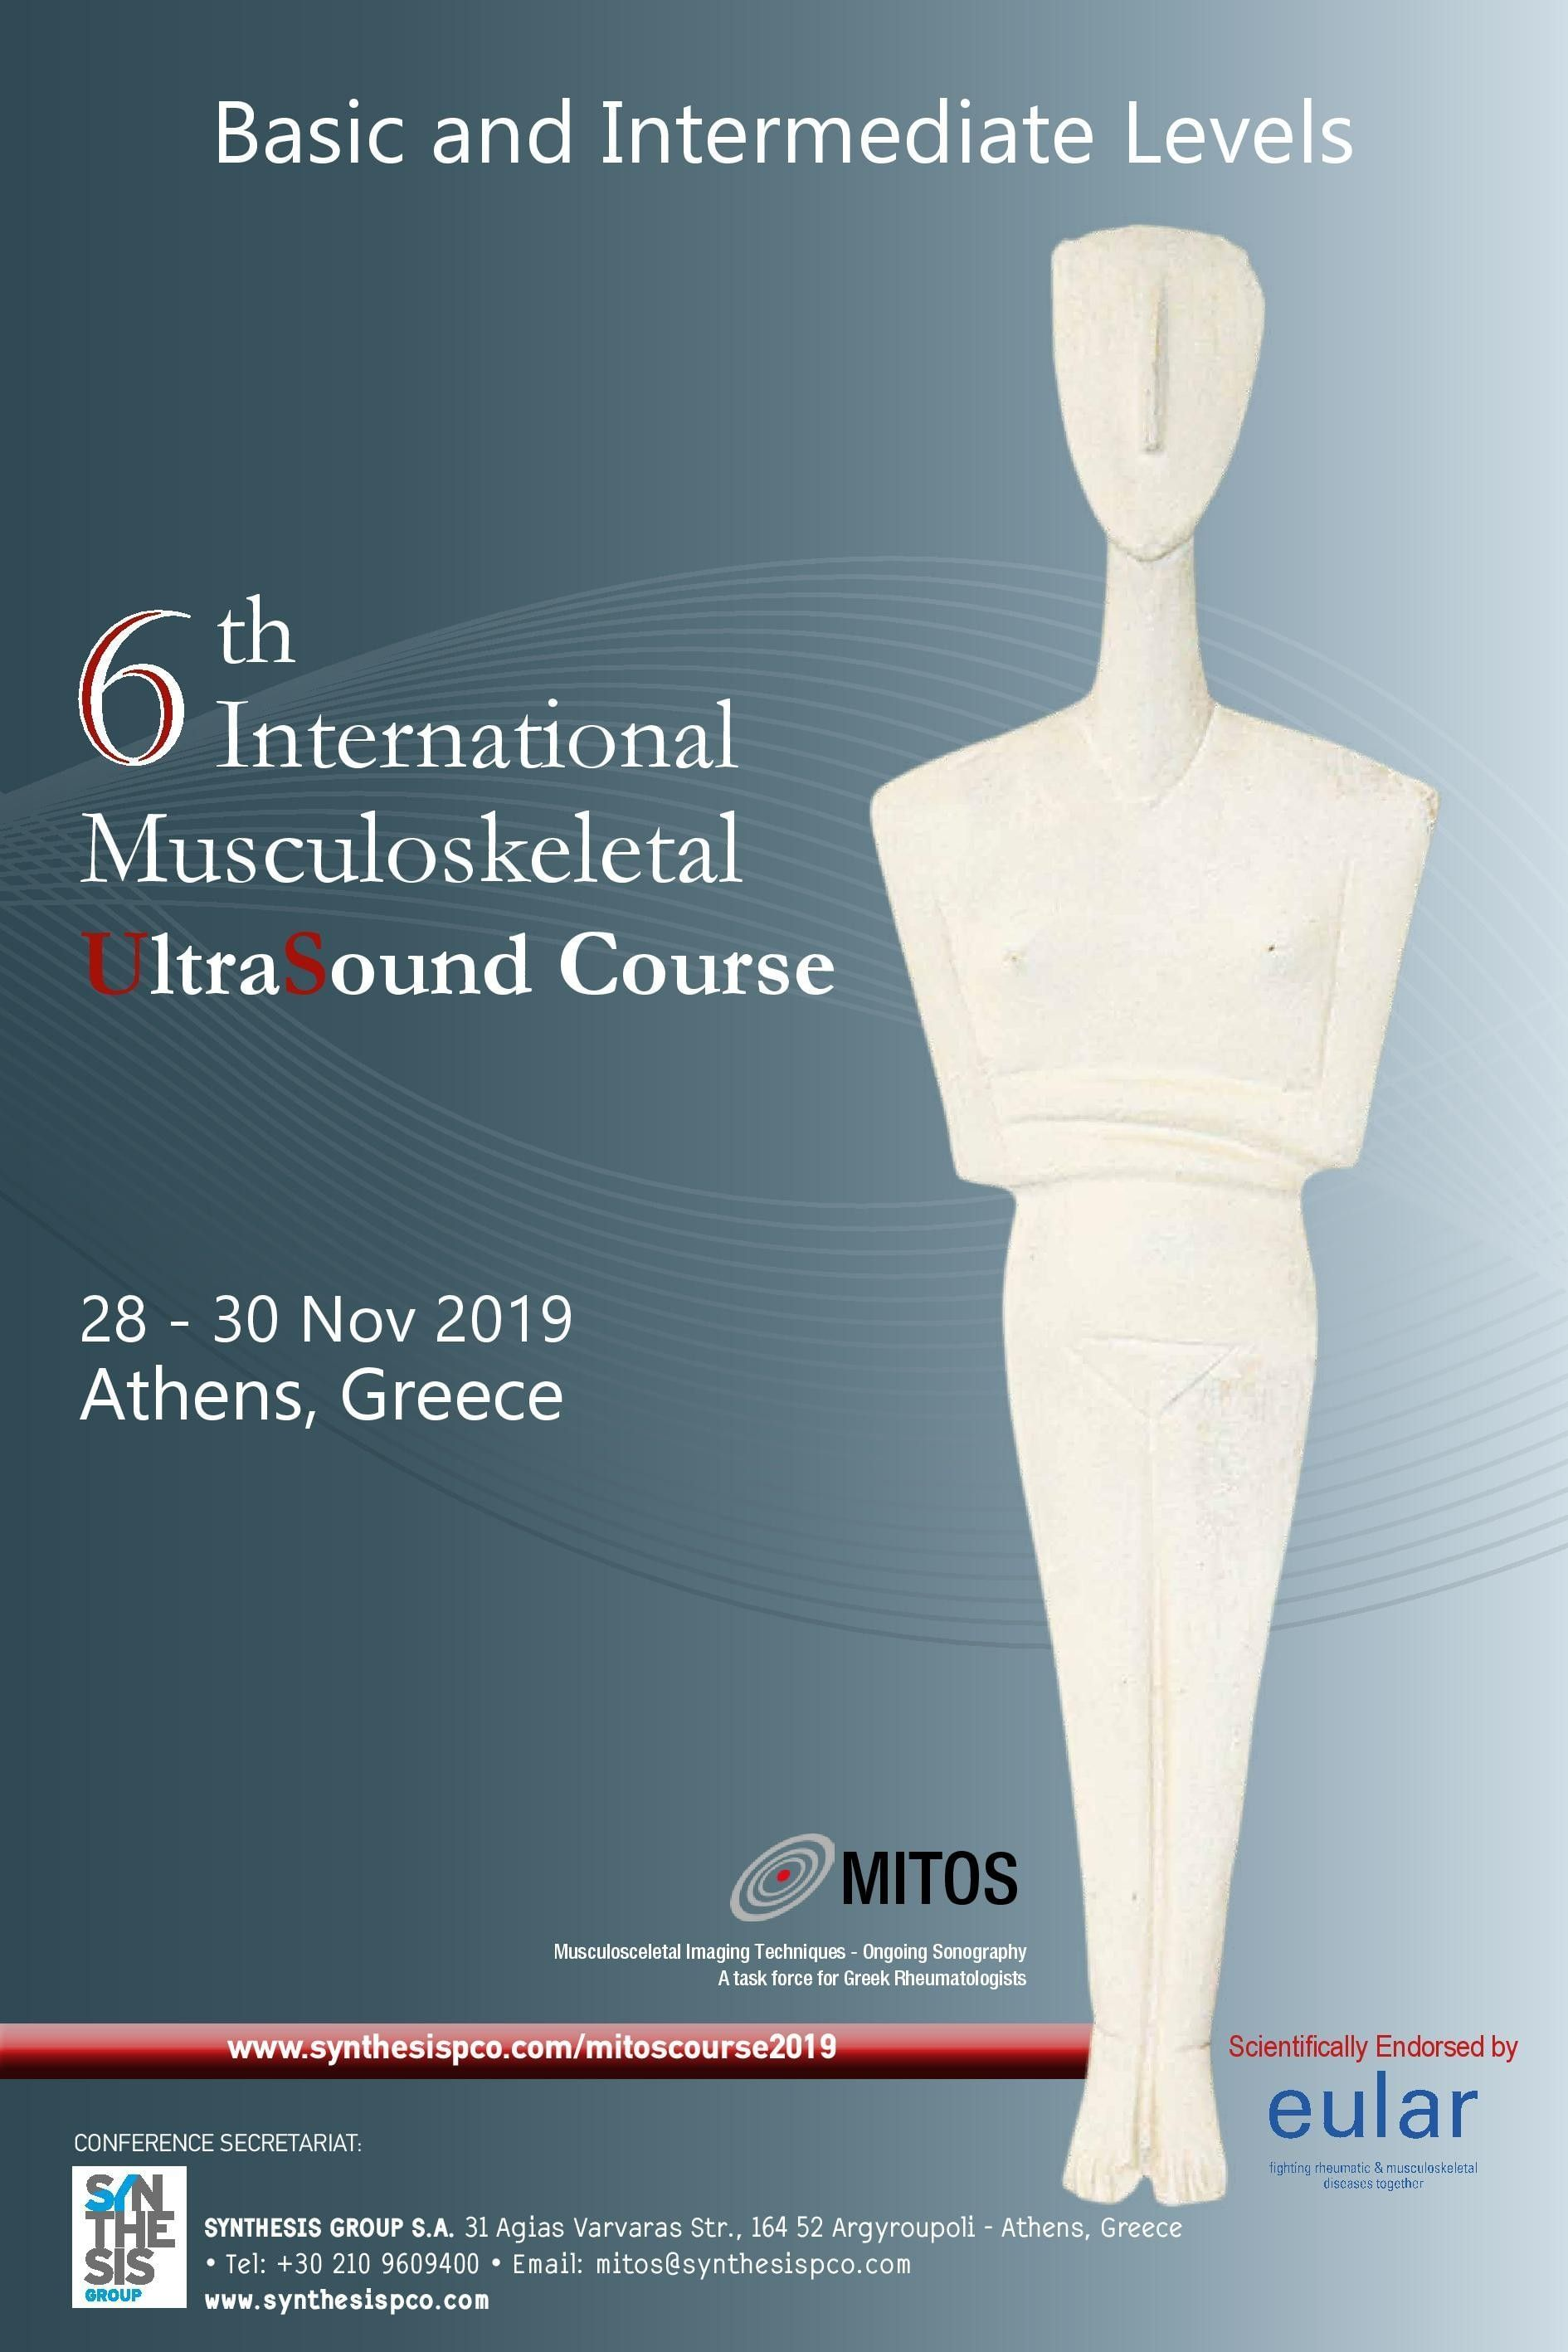 5th INTERNATIONAL MUSCULOSKELETAL ULTRASOUND COURSE